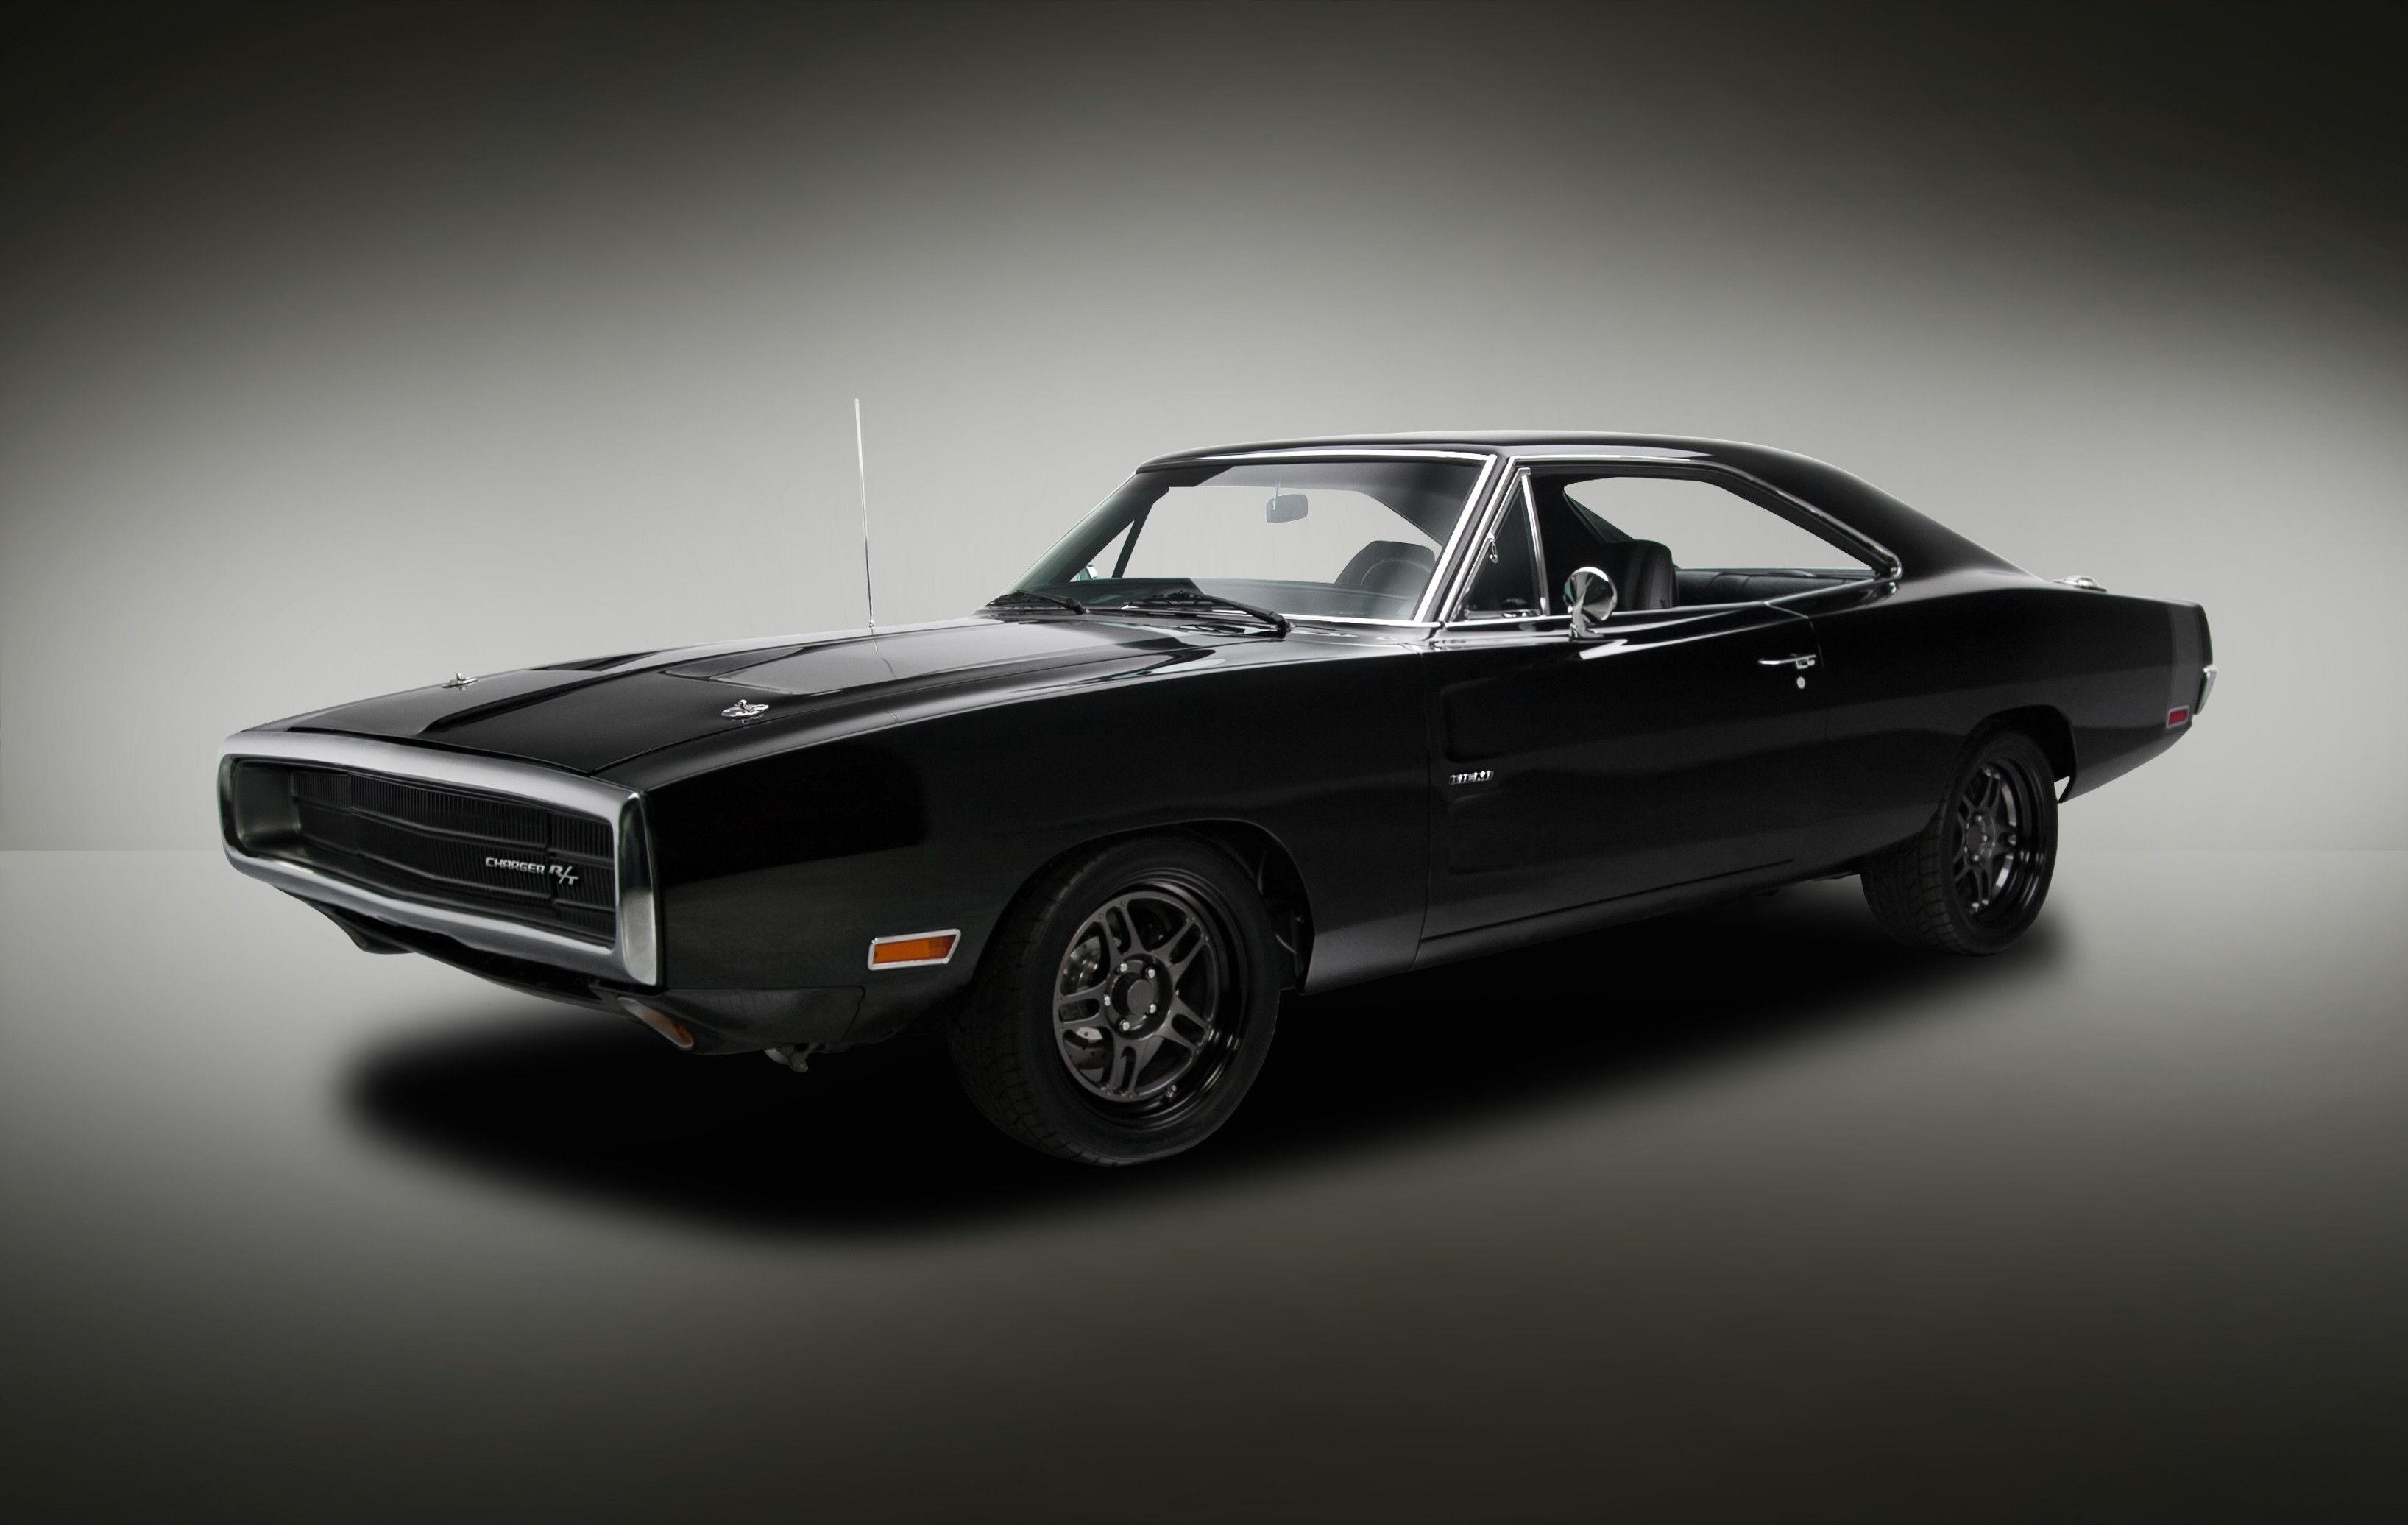 1970 Dodge Charger Wallpapers – Wallpaper Cave